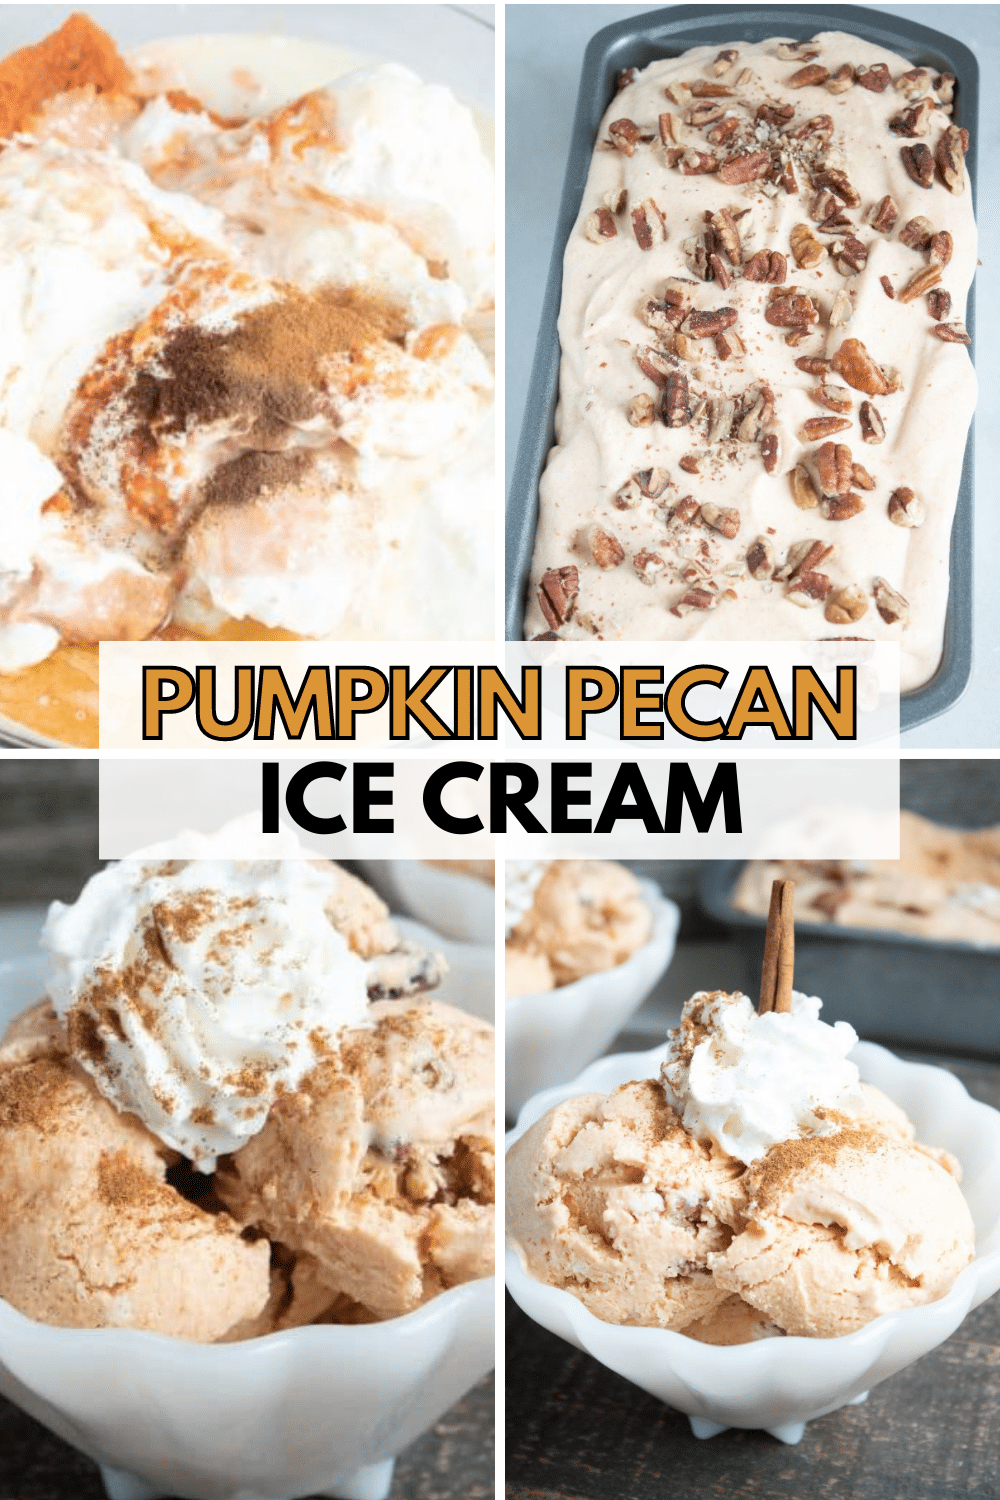 Homemade pumpkin pecan ice cream is delicious, creamy and full of fall flavors. This is a no churn ice cream recipe made with sweetened condensed milk. #pumpkin #icecream #nochurnicecream via @wondermomwannab